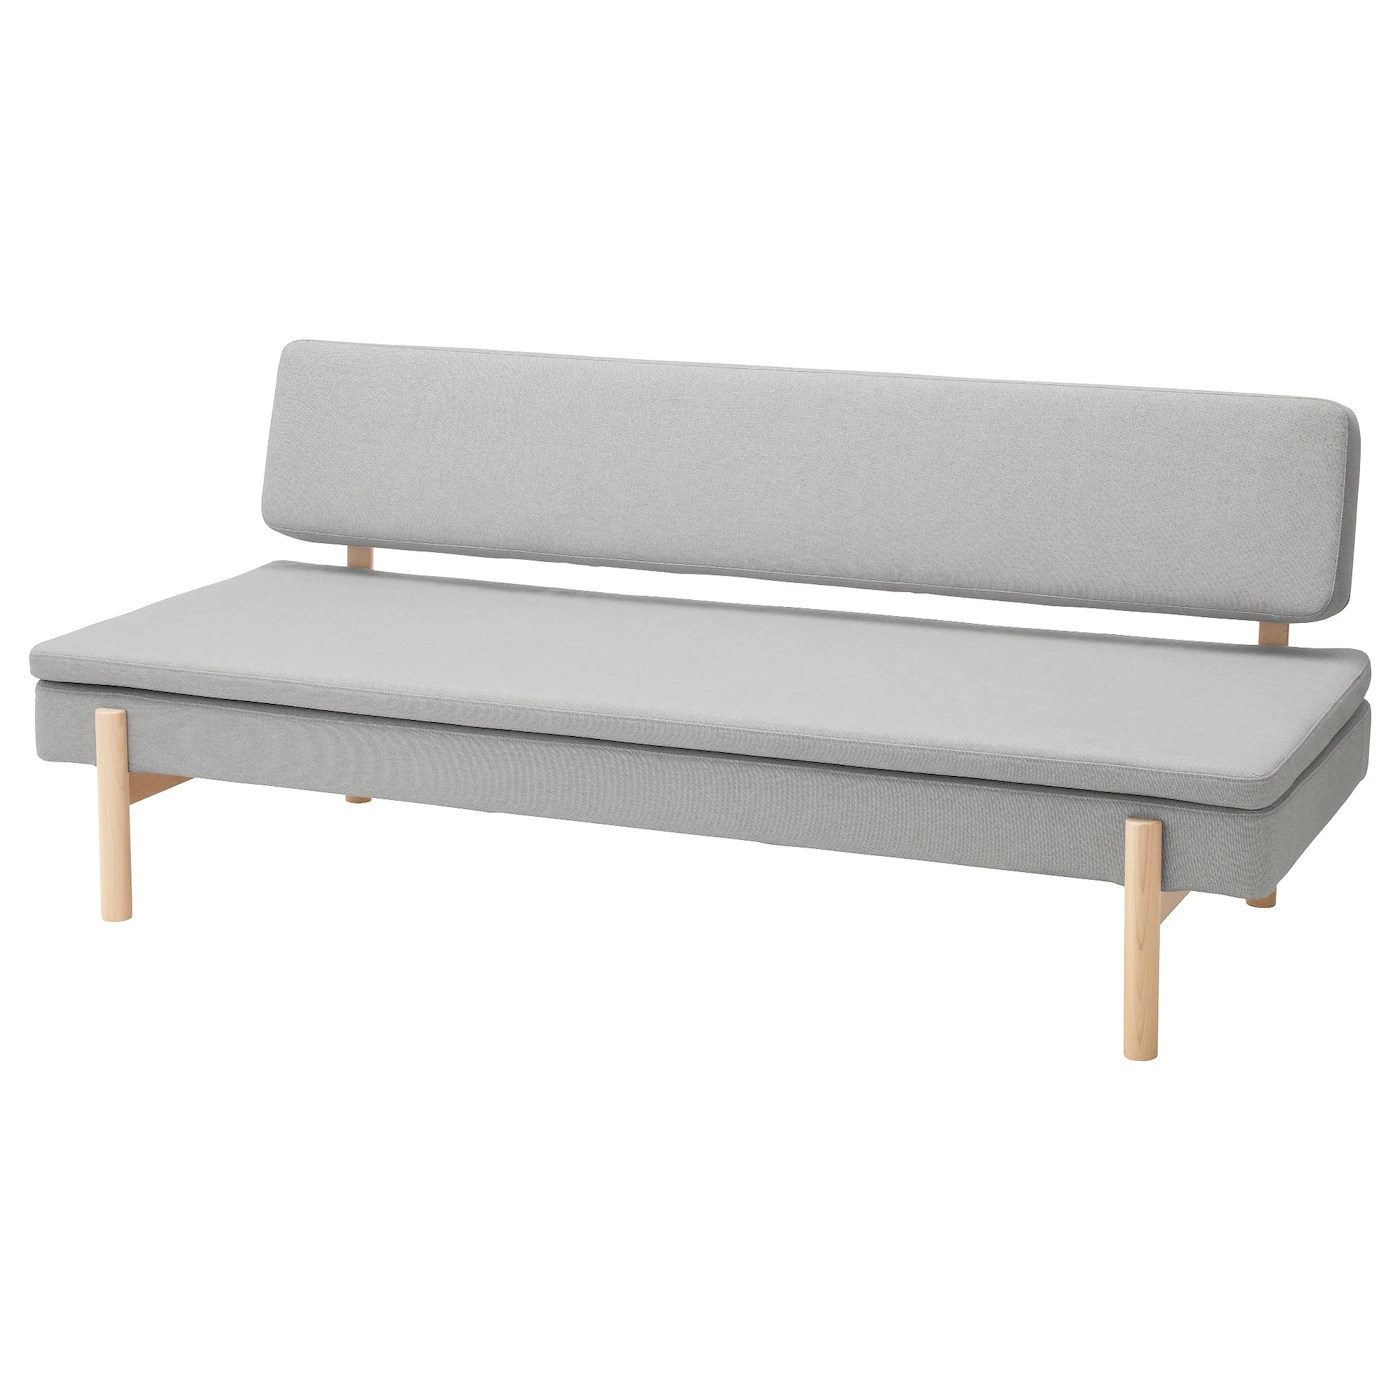 ikea karlstad chair white wedding covers cheap sofas settees couches more ypperlig 3 seat sofa bed